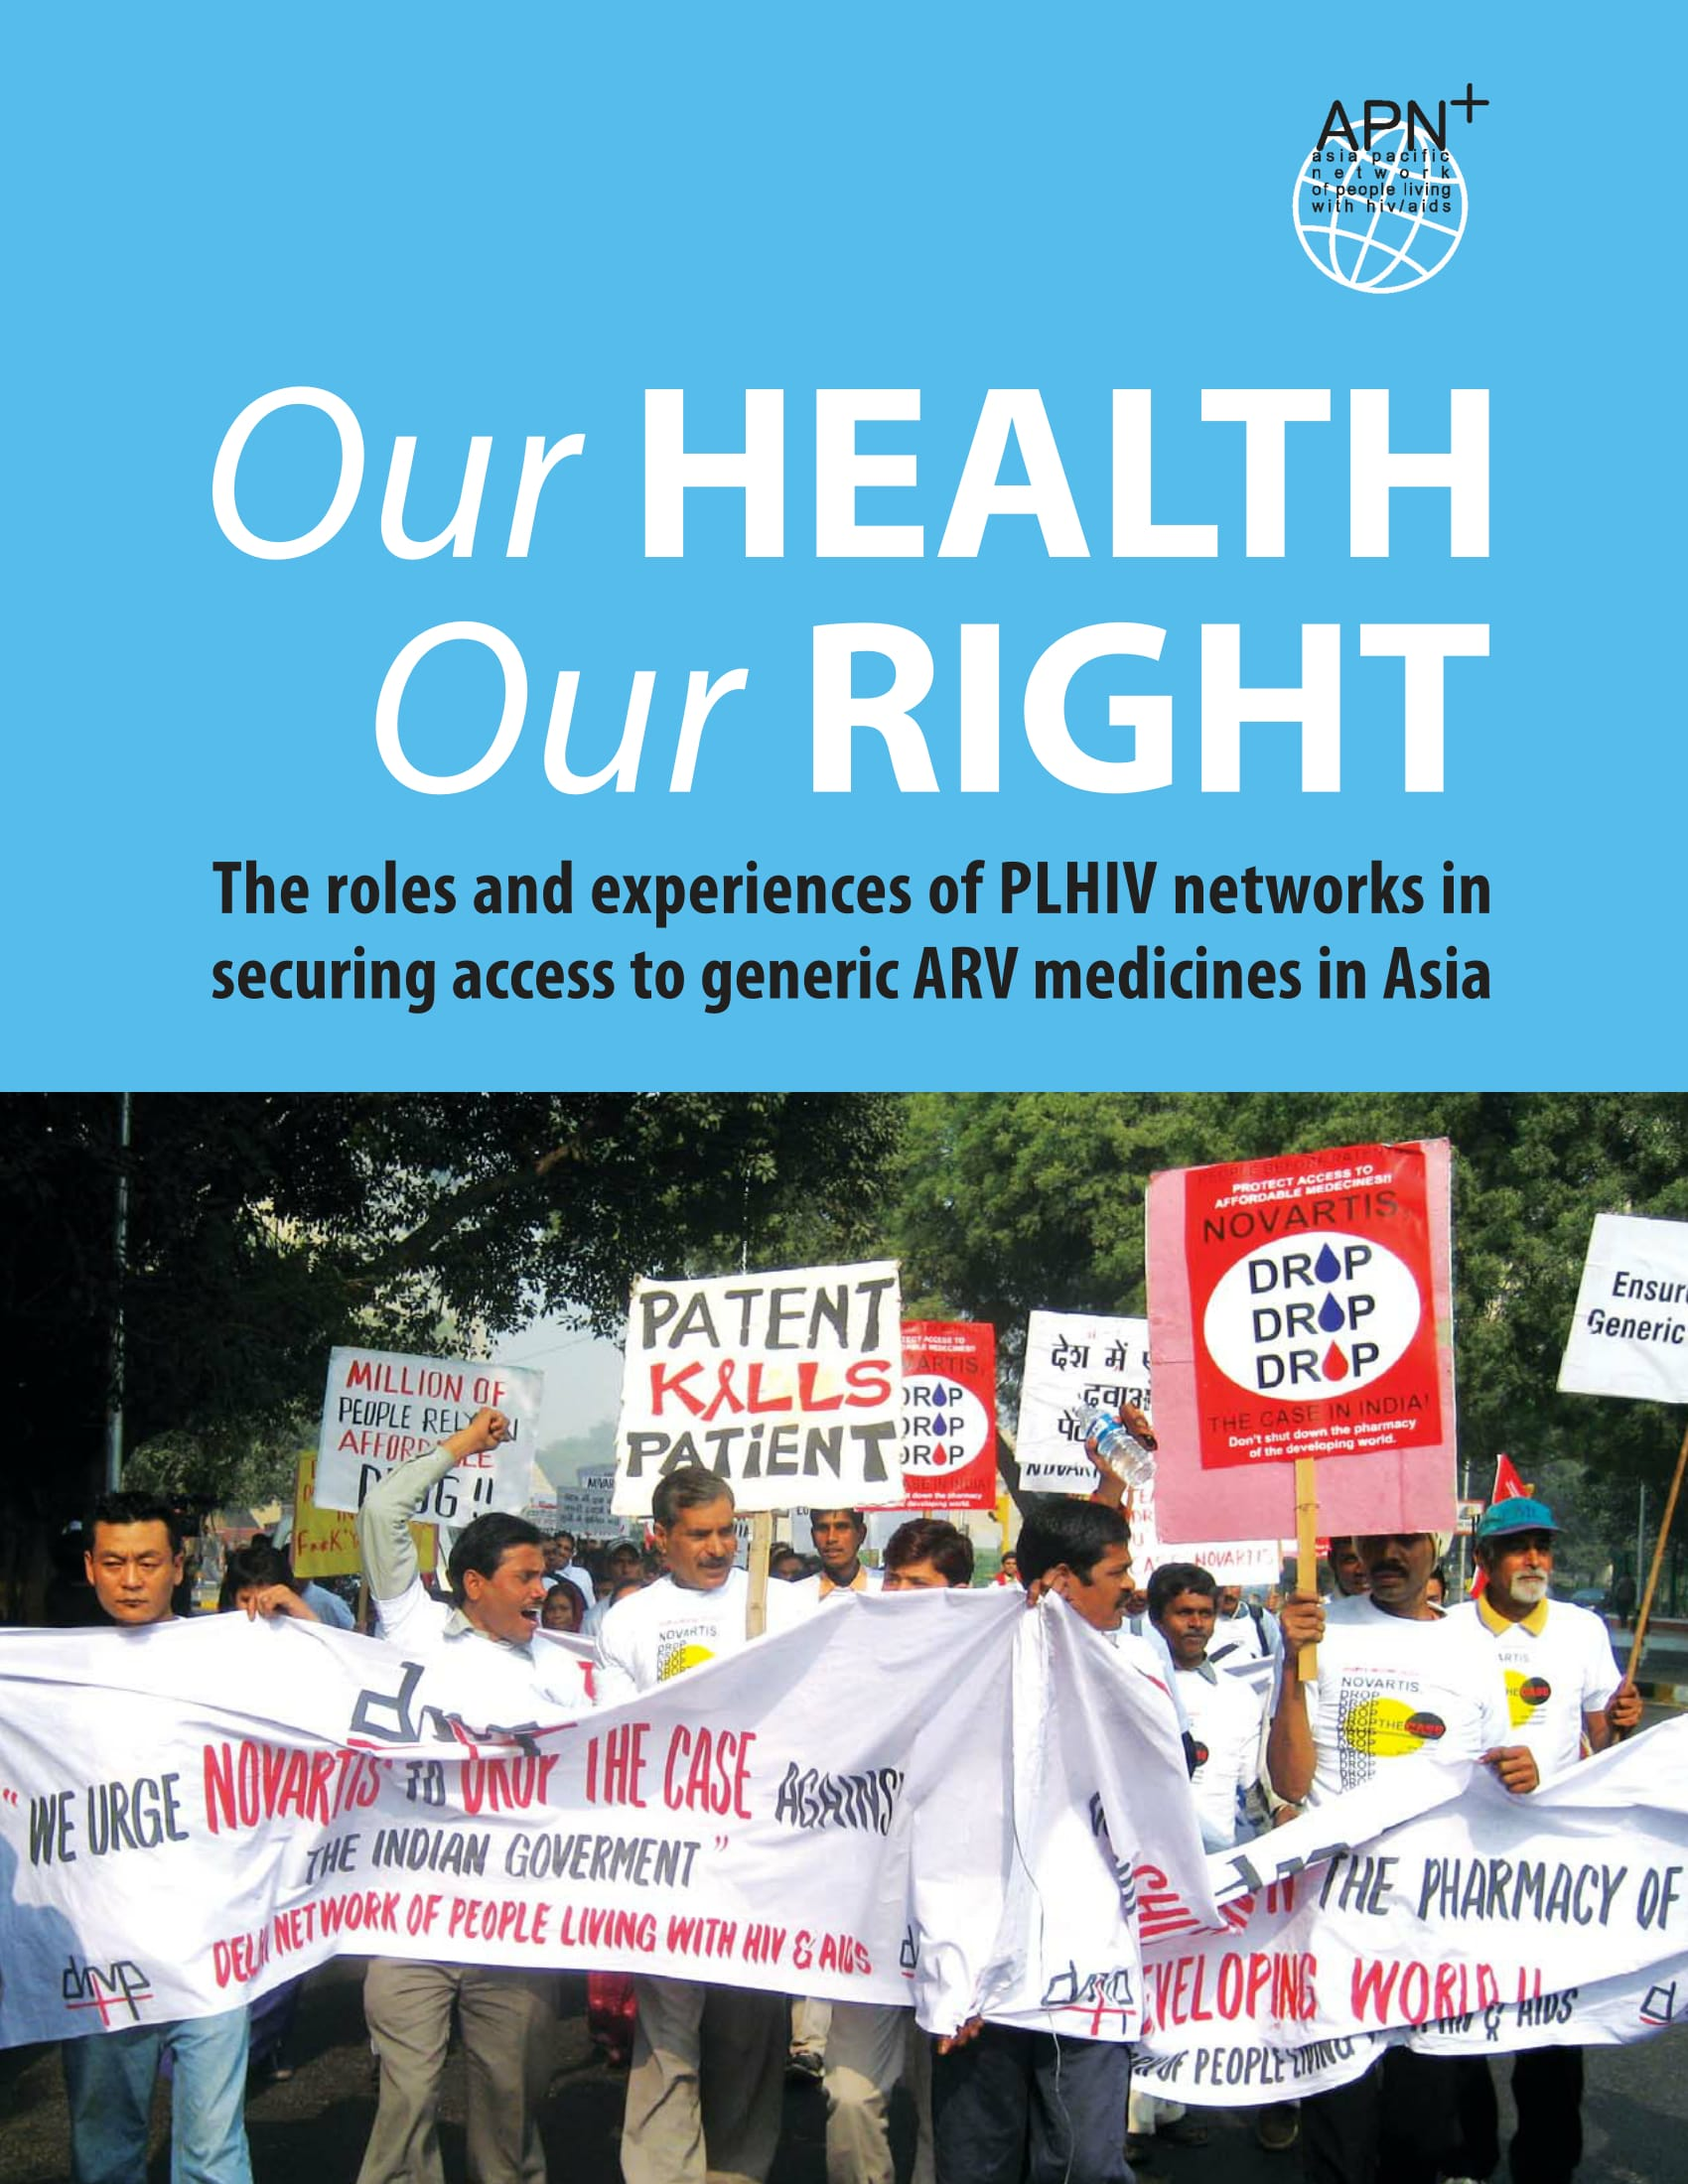 Our Health Our Right: Securing access to generic ARV medicines in Asia